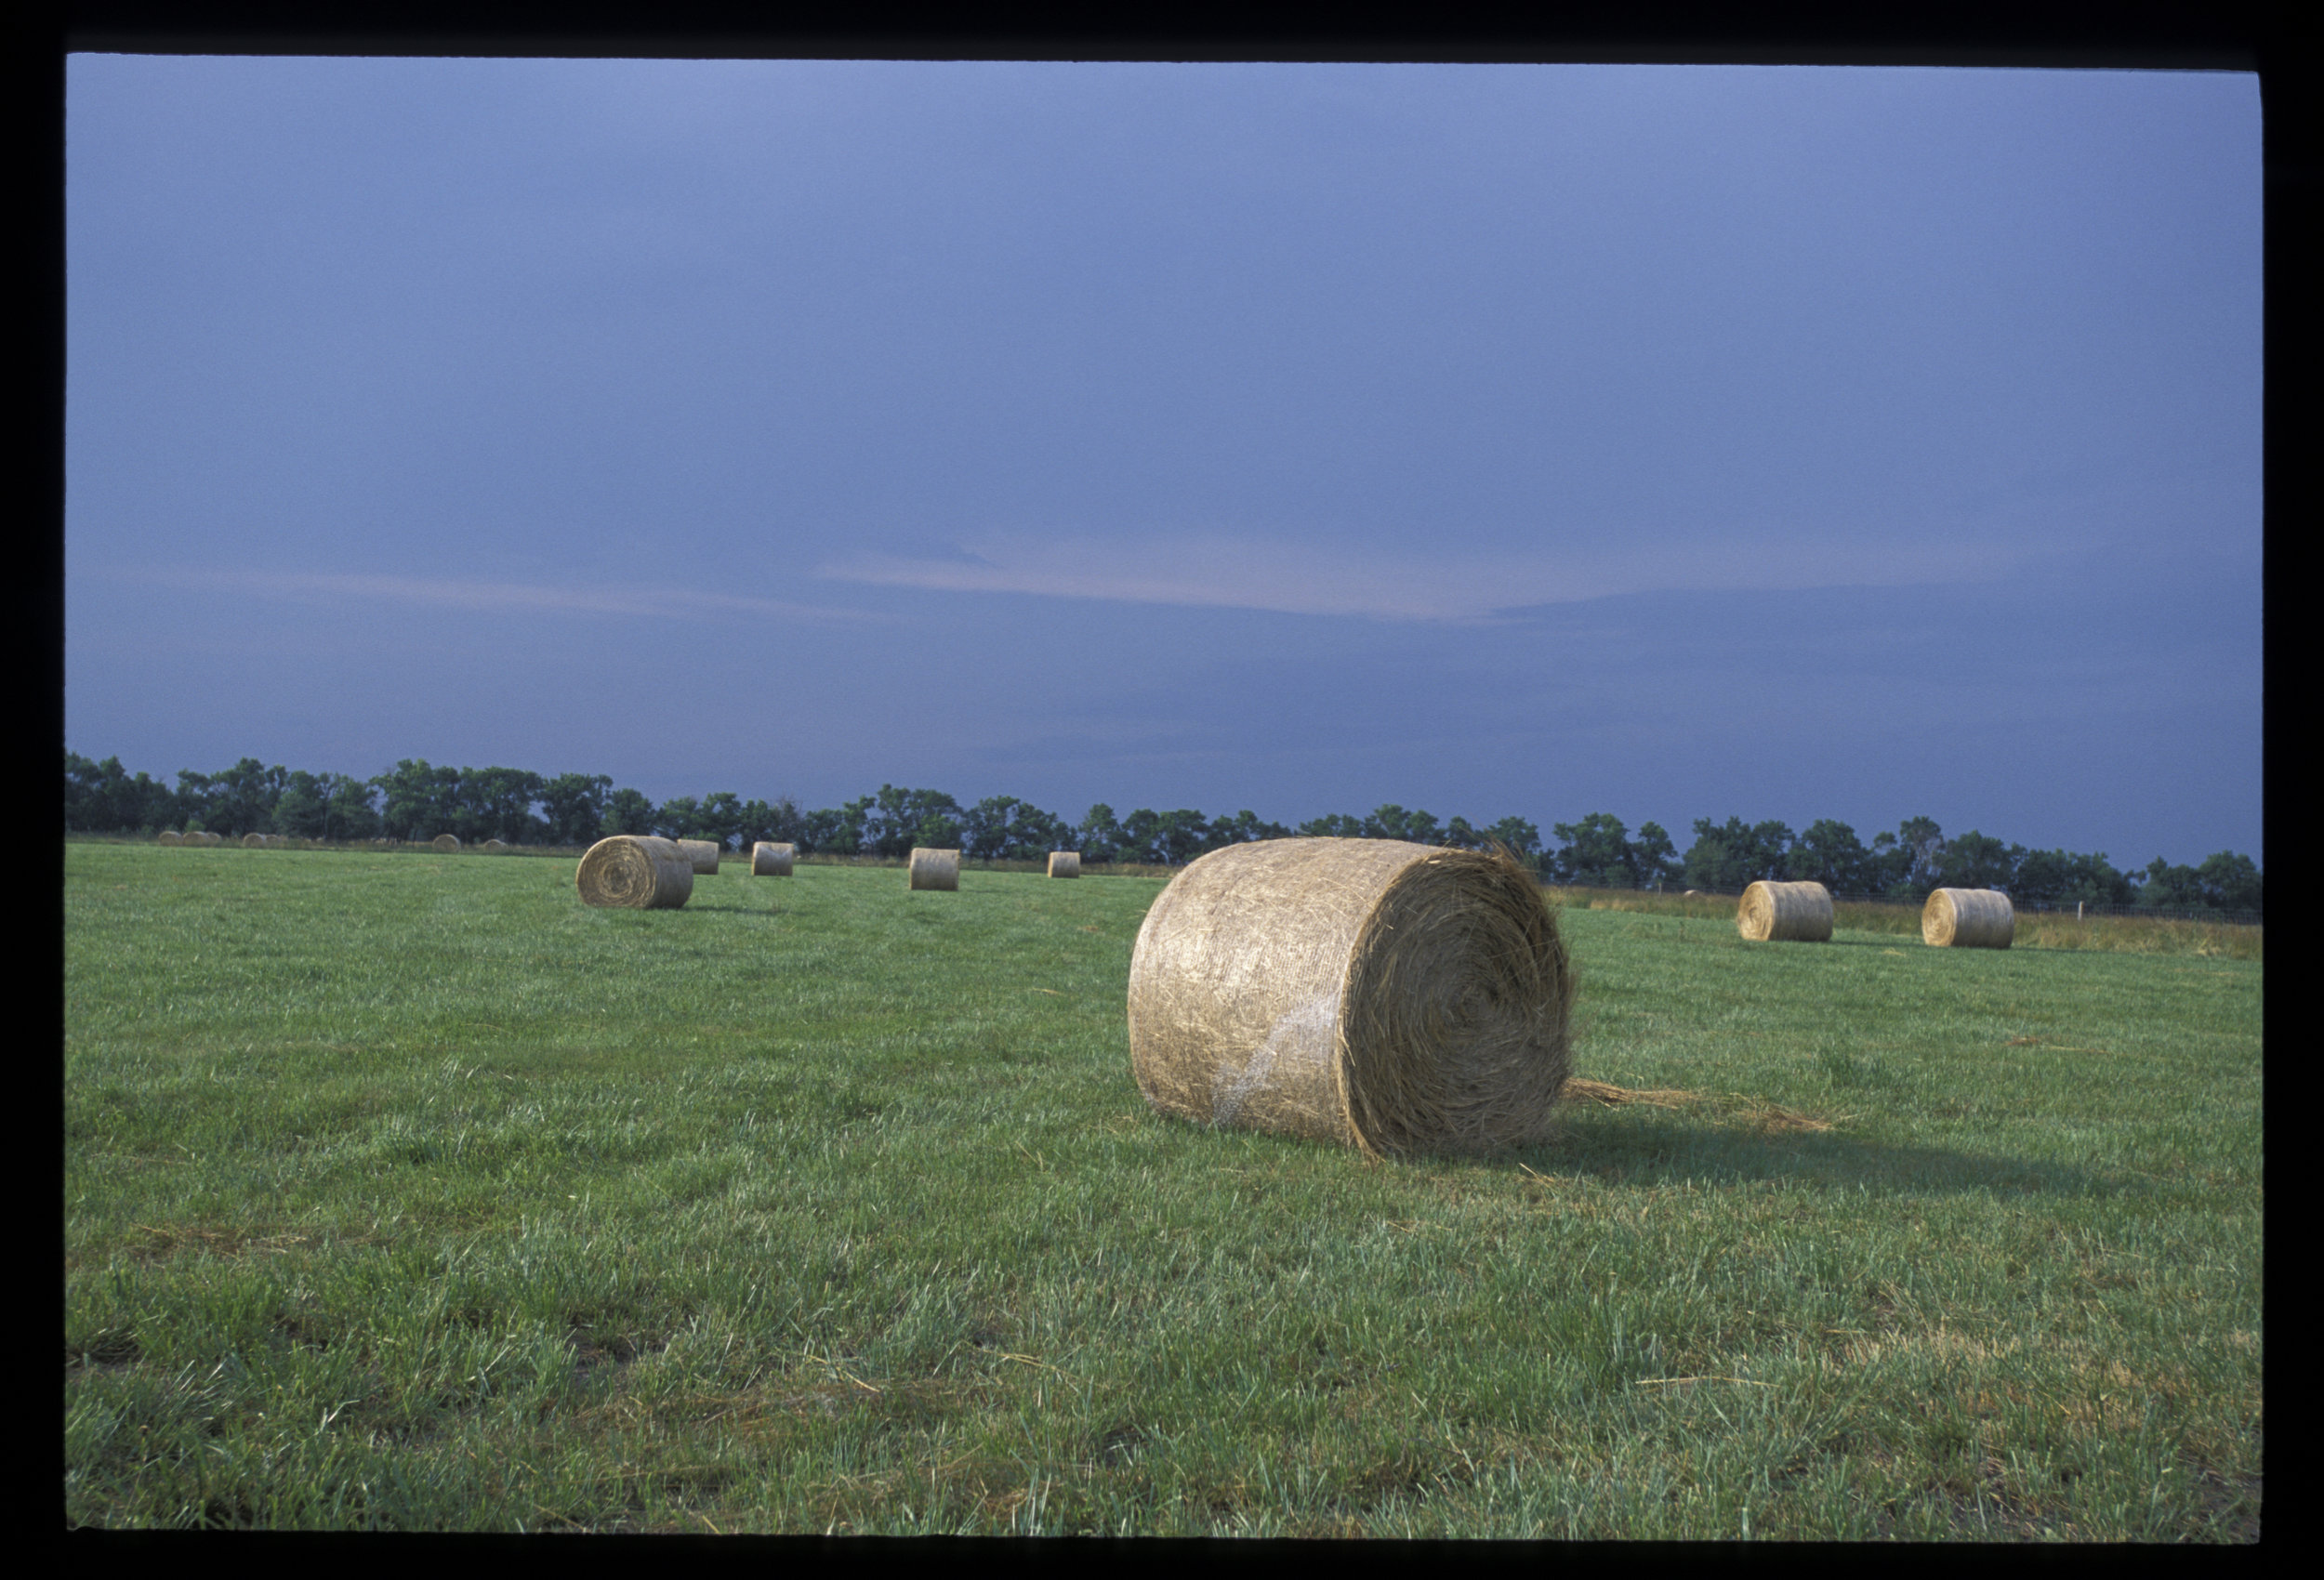 Image is by Edwin Remsberg.  Image shows round bales in hayfield on a cloudy day.